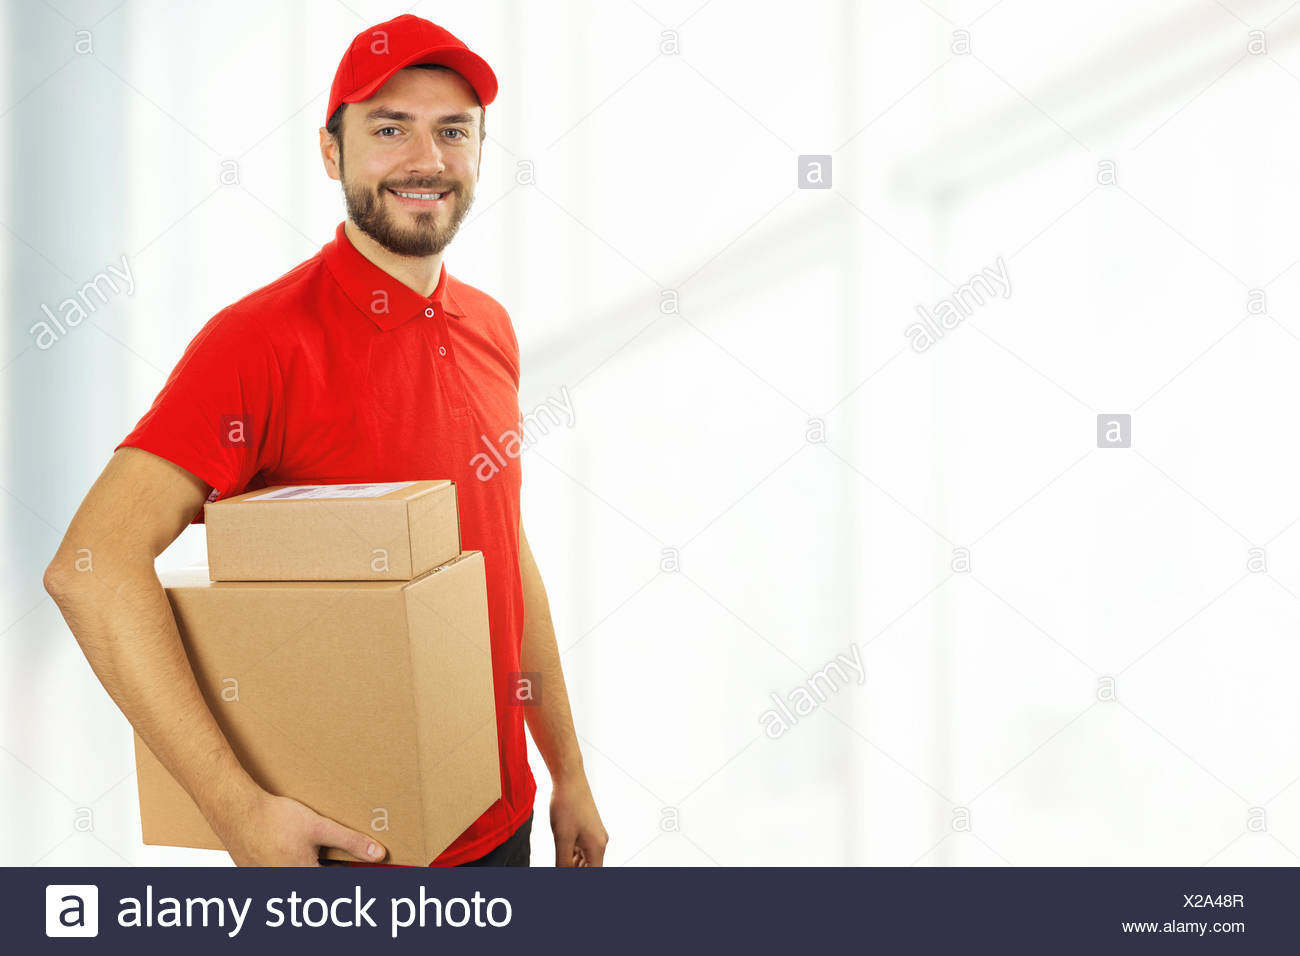 delivery man with cardboard boxes standing in office. copy space - Stock Image